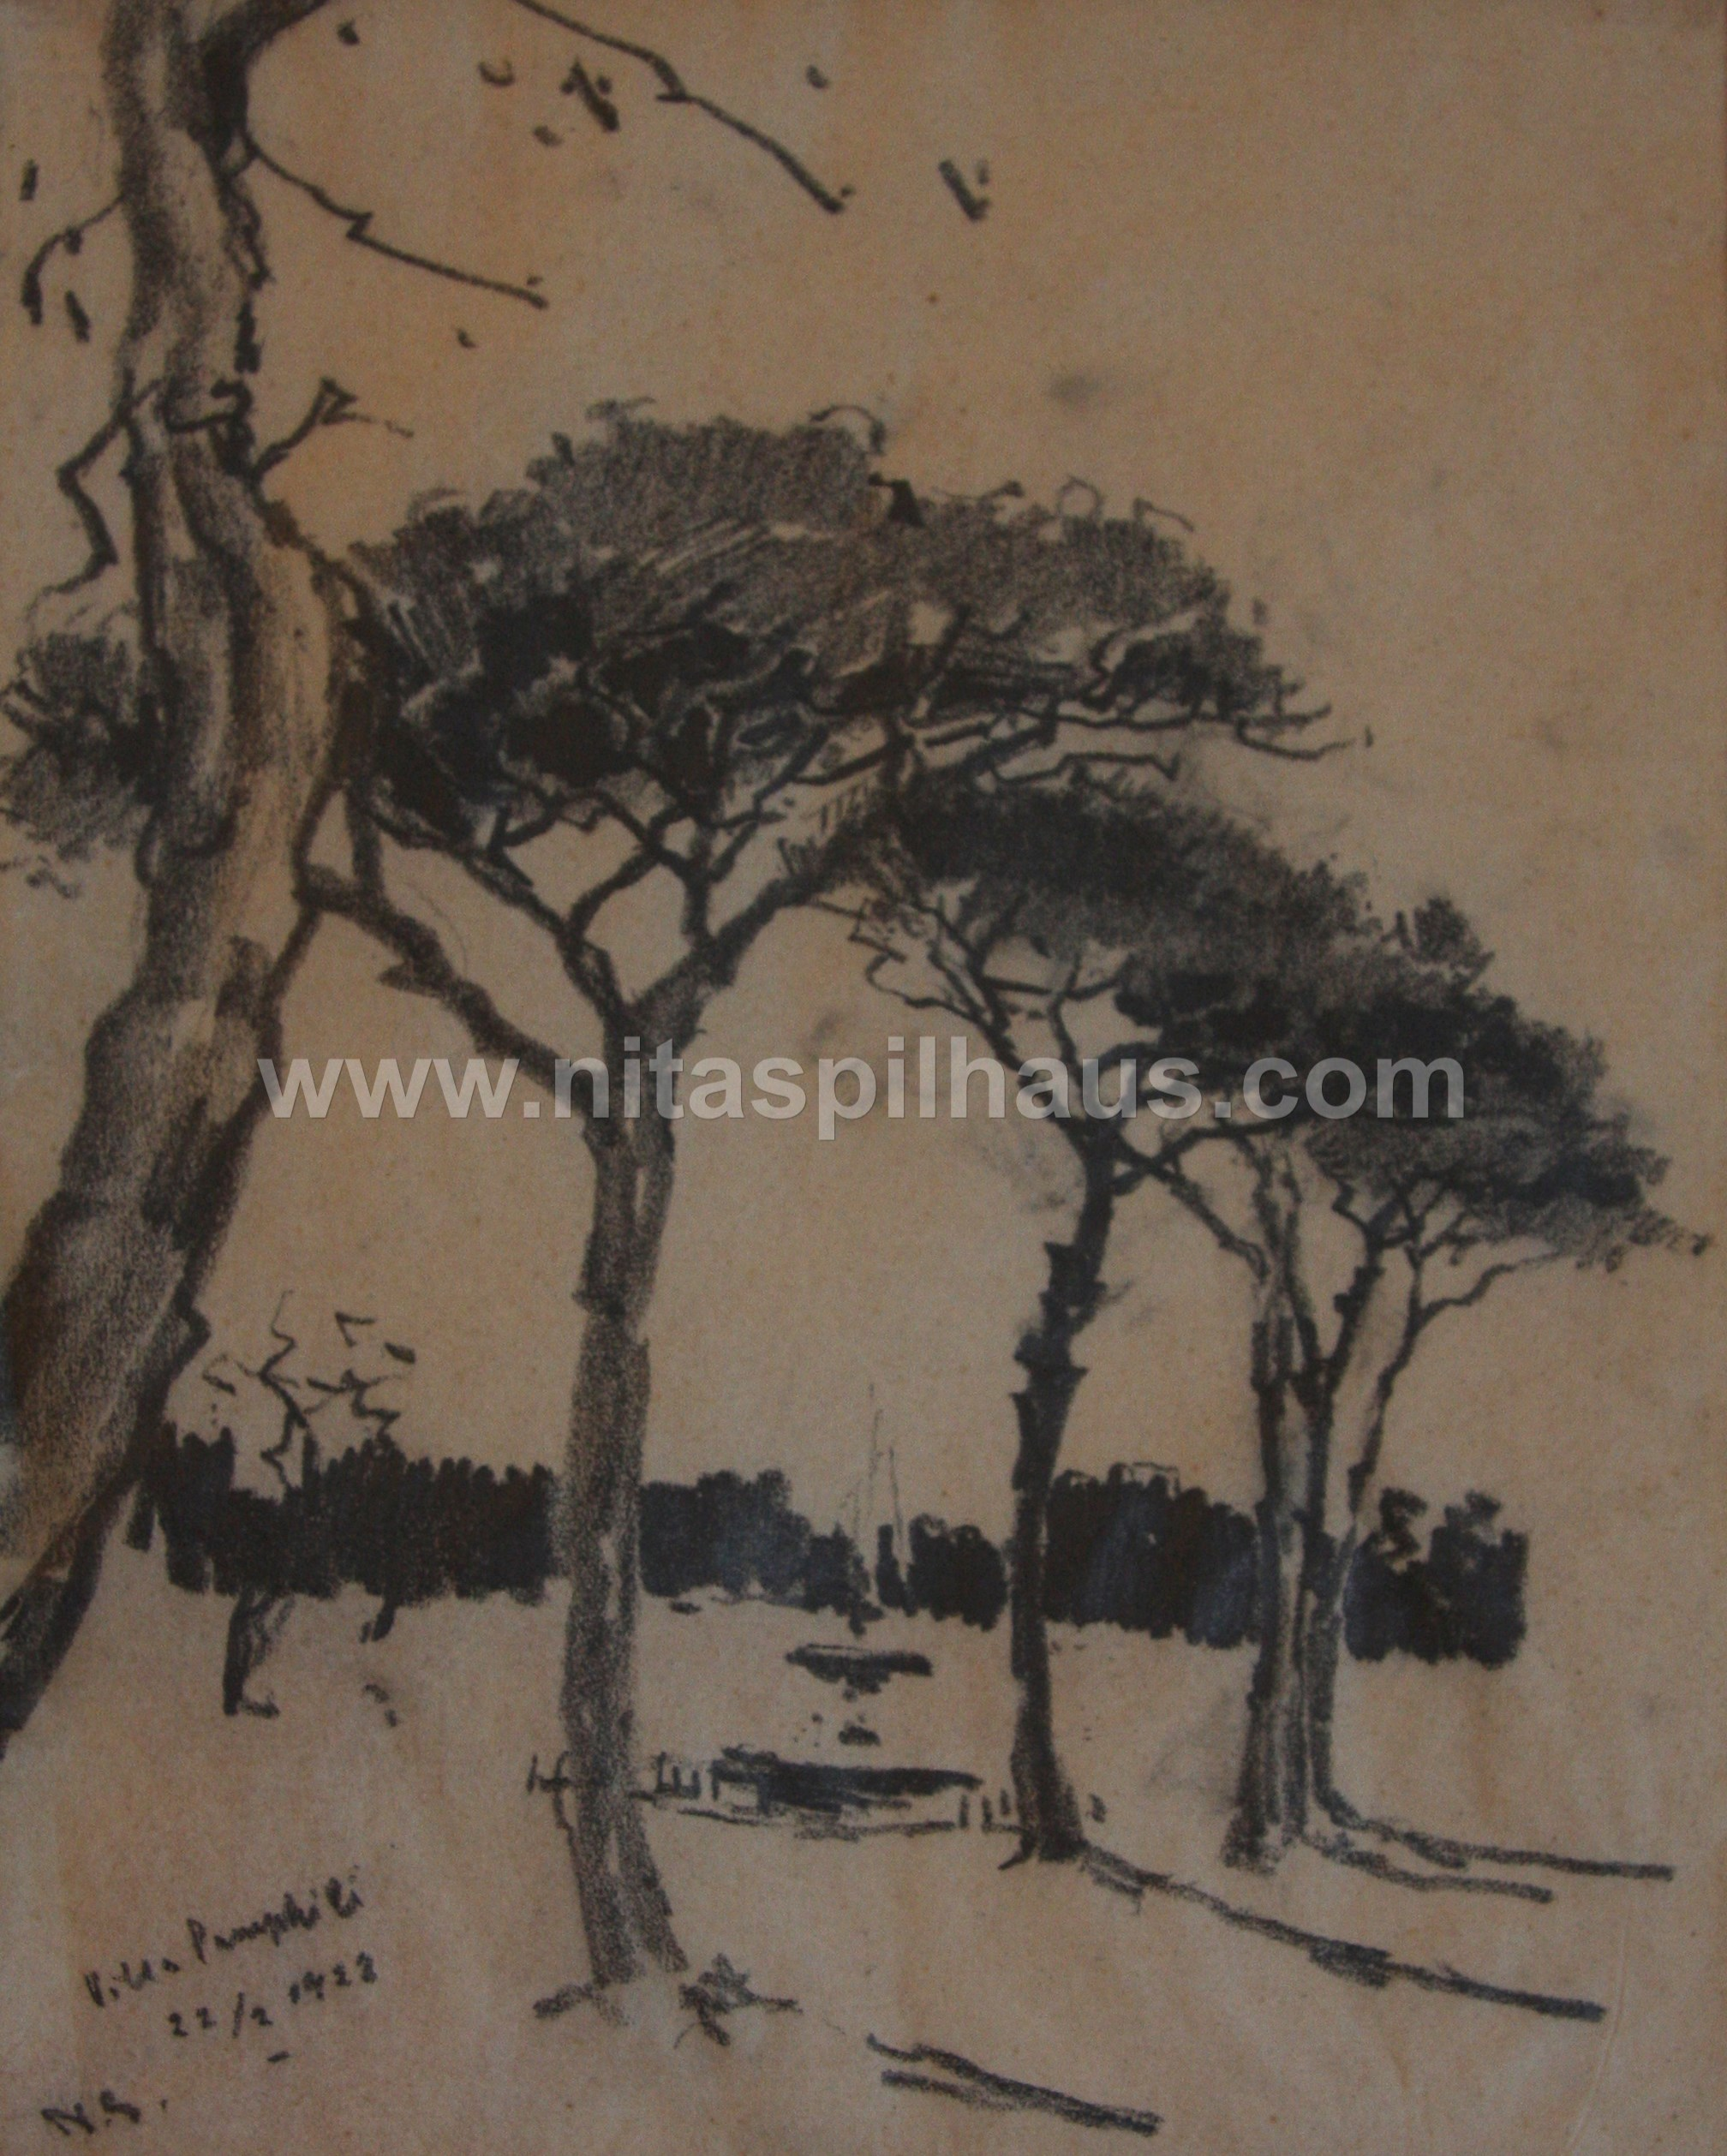 Villa Pamphili, Drawing in pencil on paper 18.5 x 26.5 Collector 3